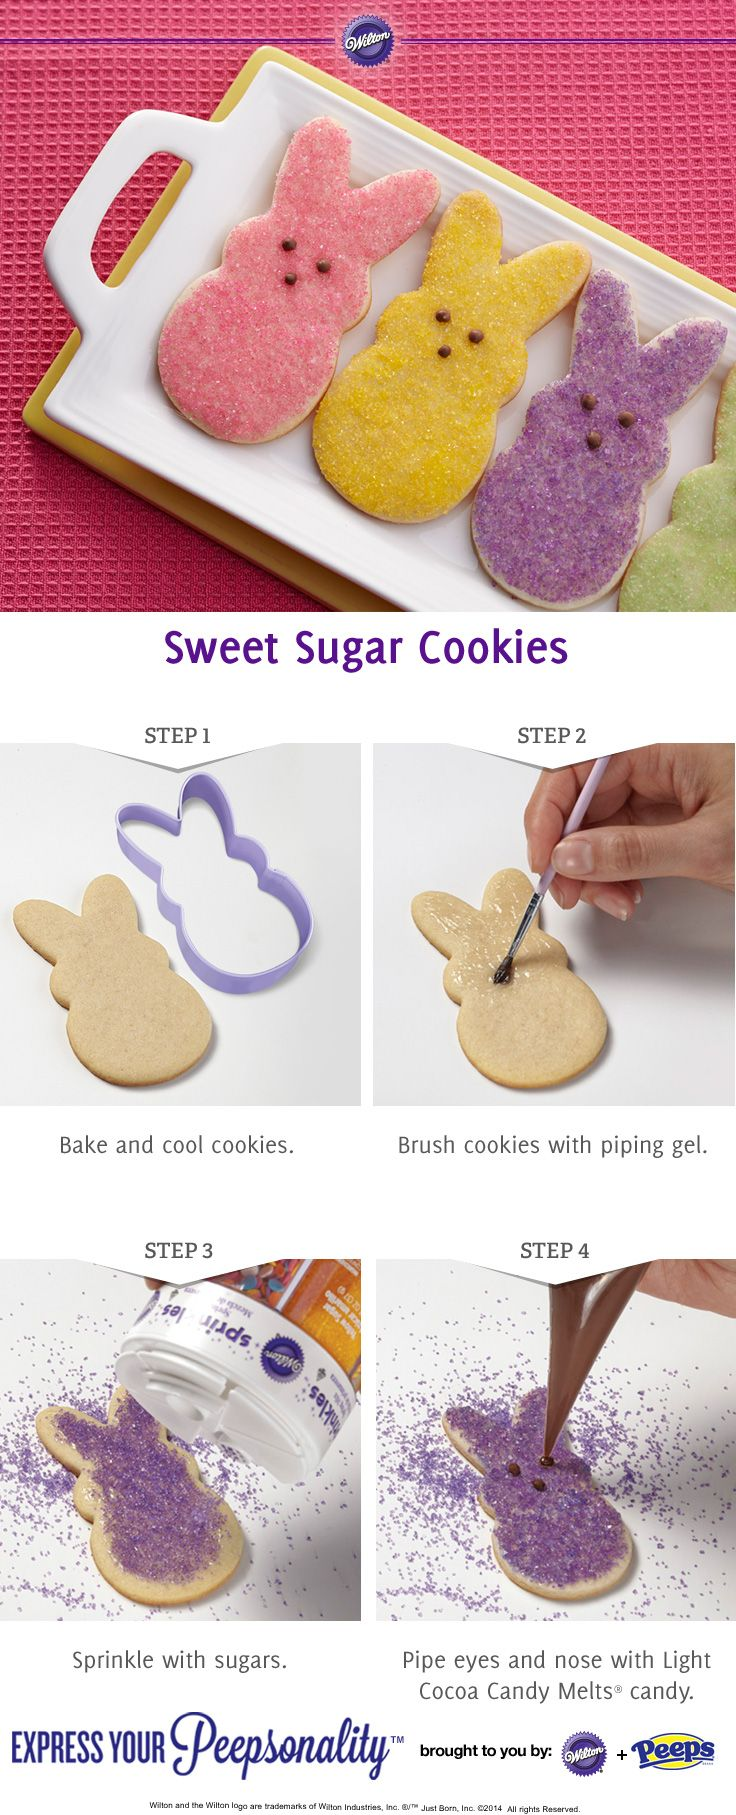 How to make Peeps Sugar Cookies from @Wilton Cake Decorating | Find Wilton products at Joann.com